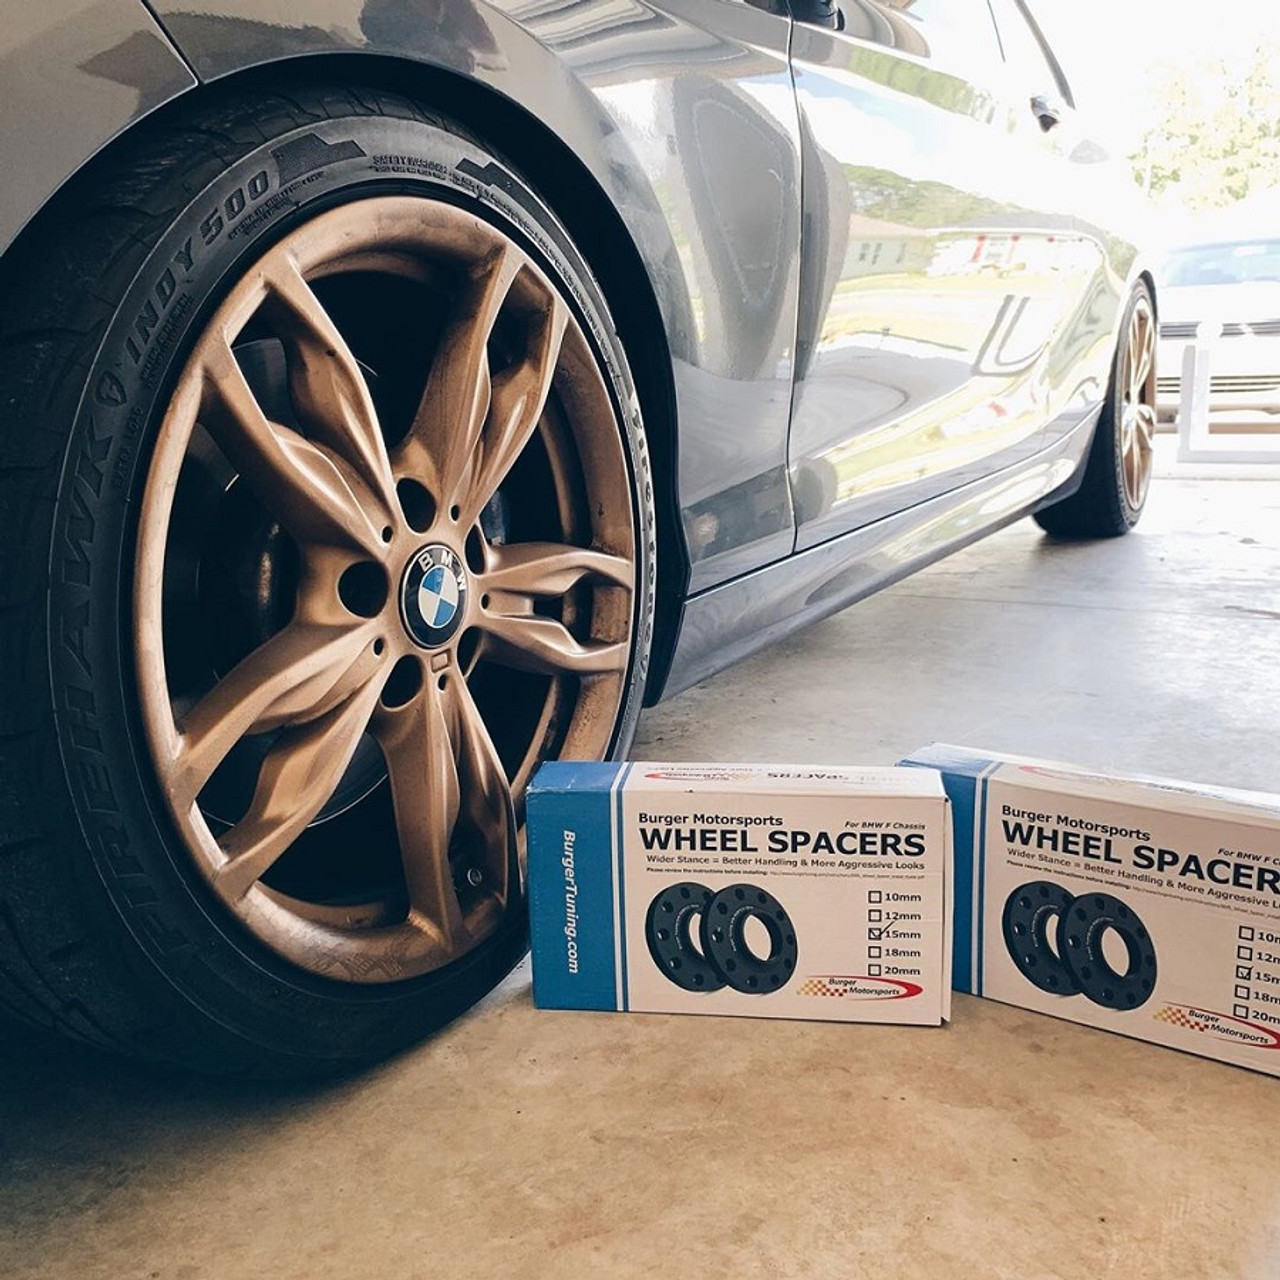 Bmw Wheel Spacers By Bms Sold By Pair Extreme Power House